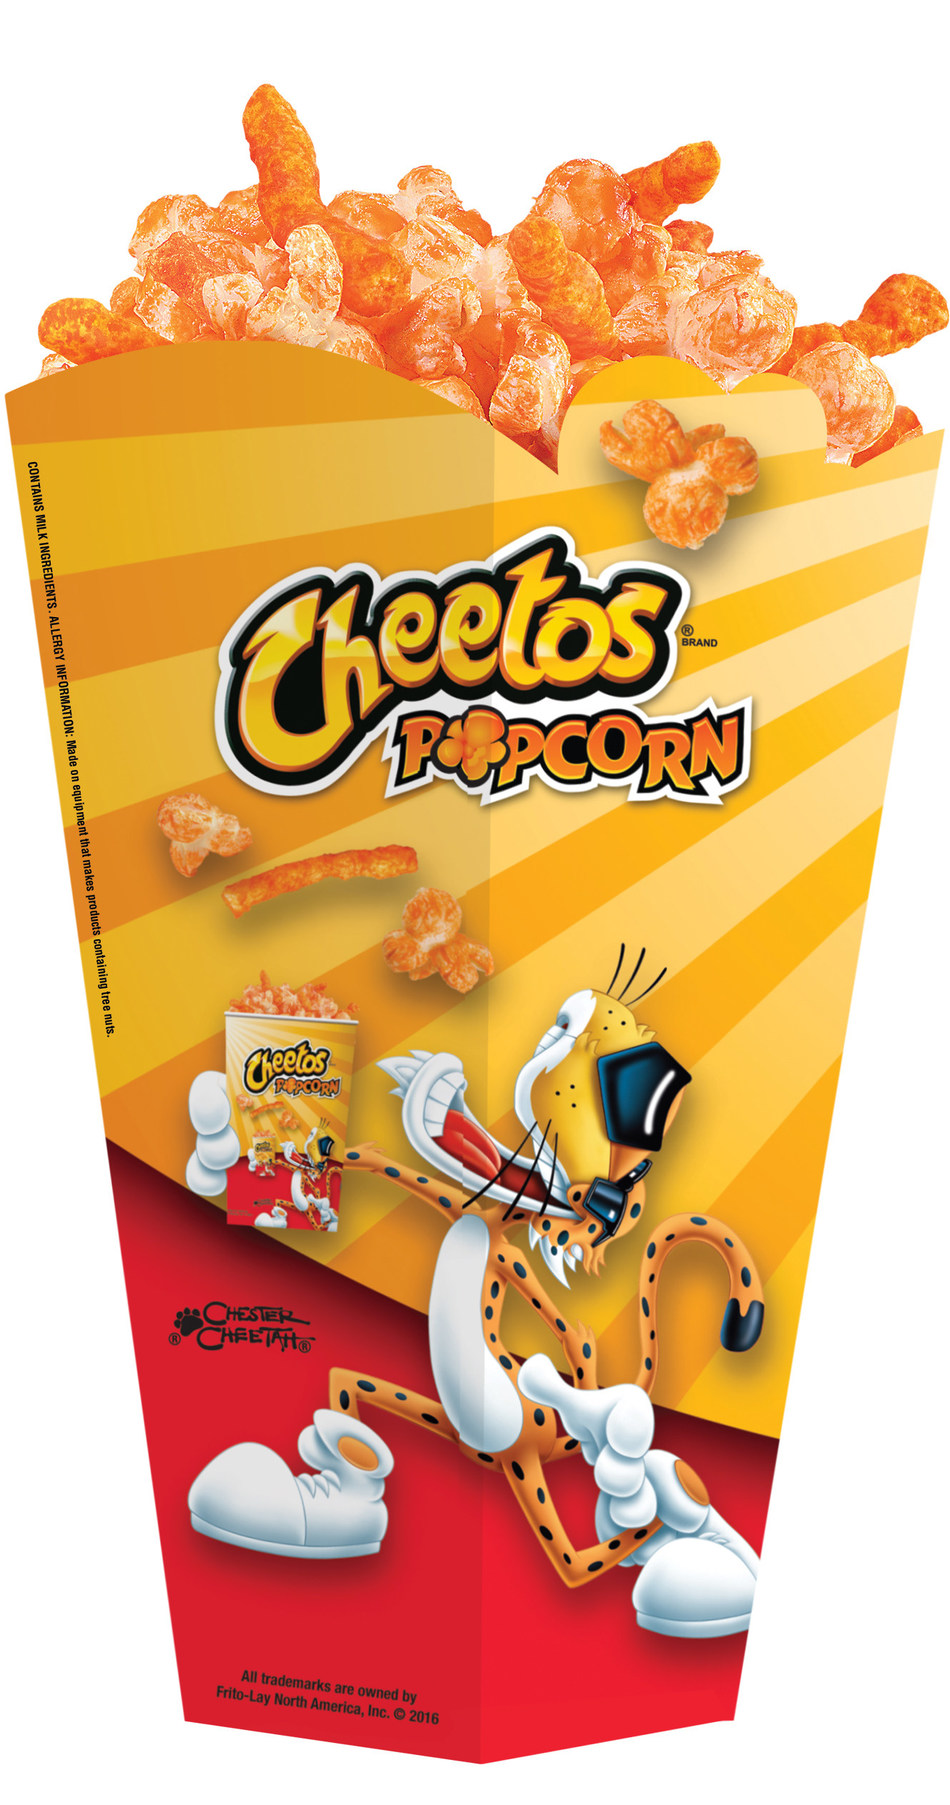 Cheetos Popcorn to Premiere at Regal Cinemas Nationwide